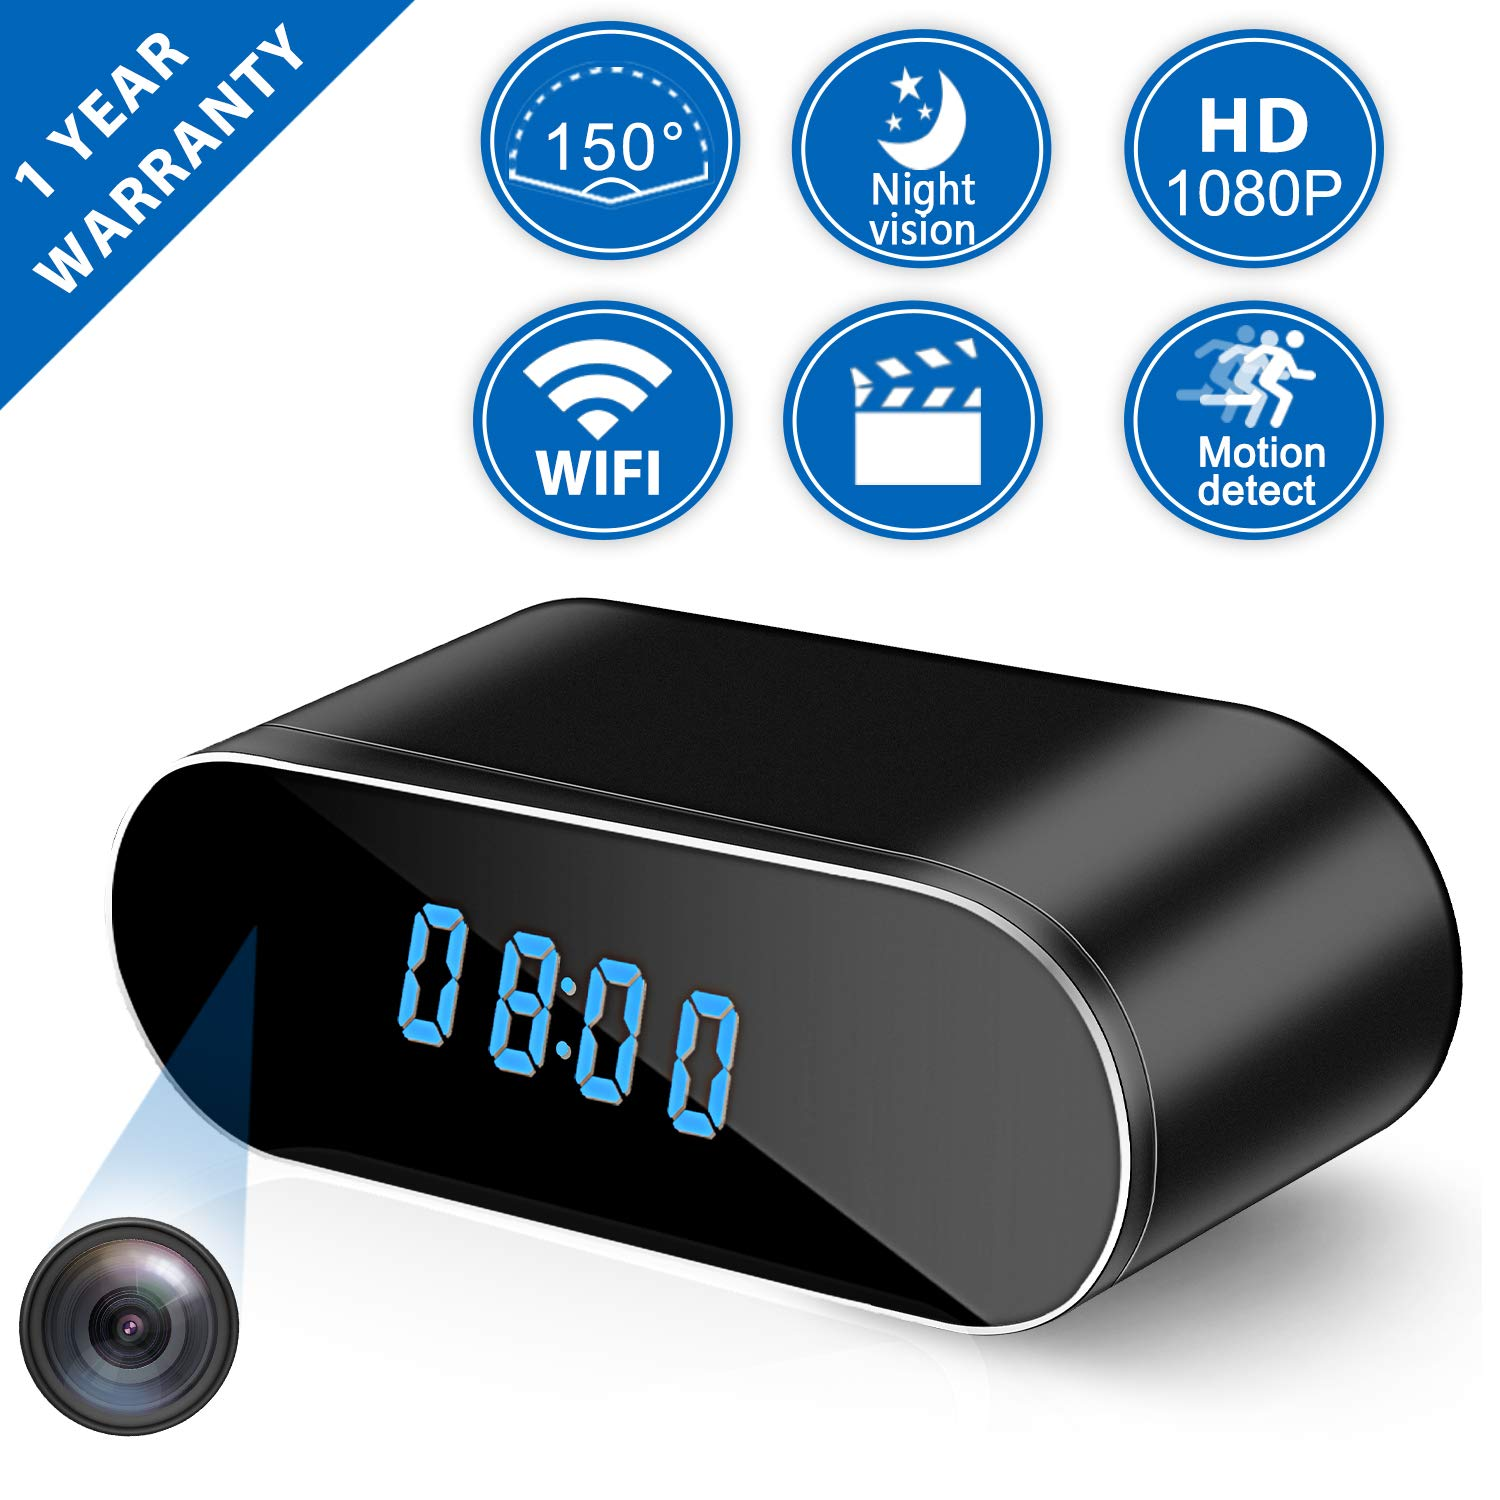 Hidden Camera Clock, Spy Camera WiFi Wireless Hidden, 1080P Nanny Cameras and Hidden Cameras with Night Vision and Motion Detective, Perfect Indoor 150 Angle Security Camera Alarm Clock for Home by zcda